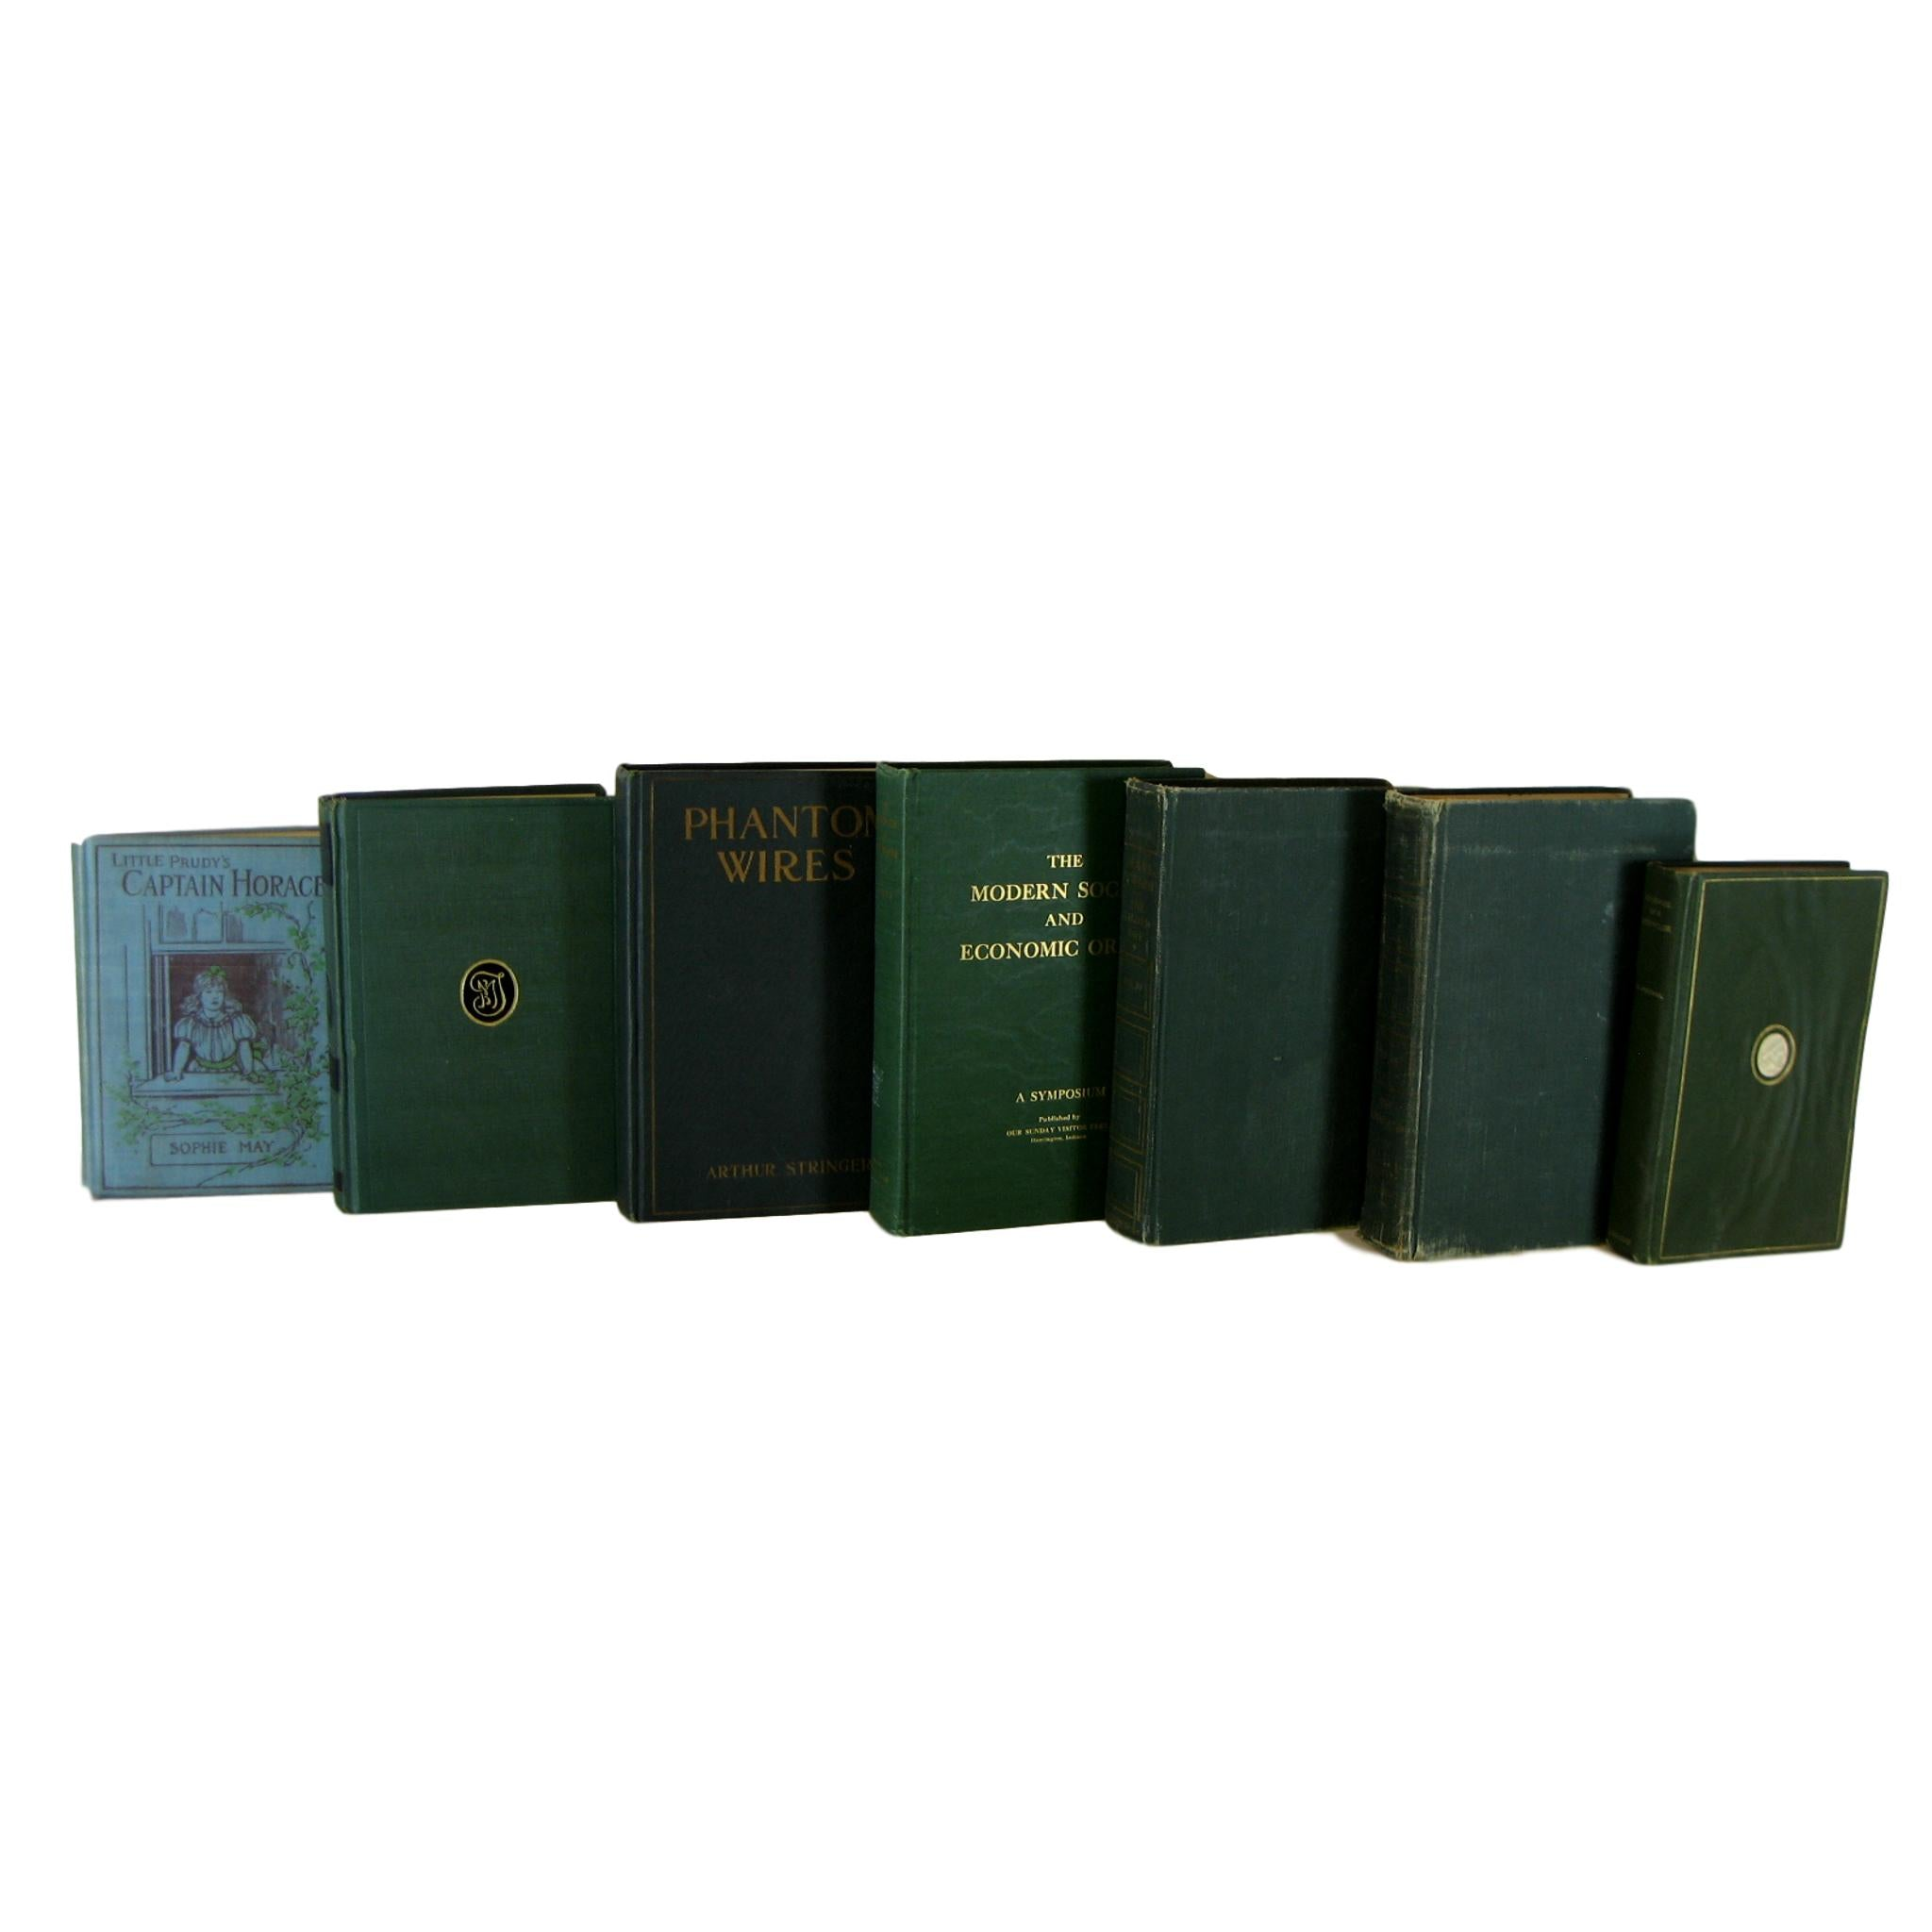 Distressed Green Decorative  Books for Display, S/7 - Decades of Vintage